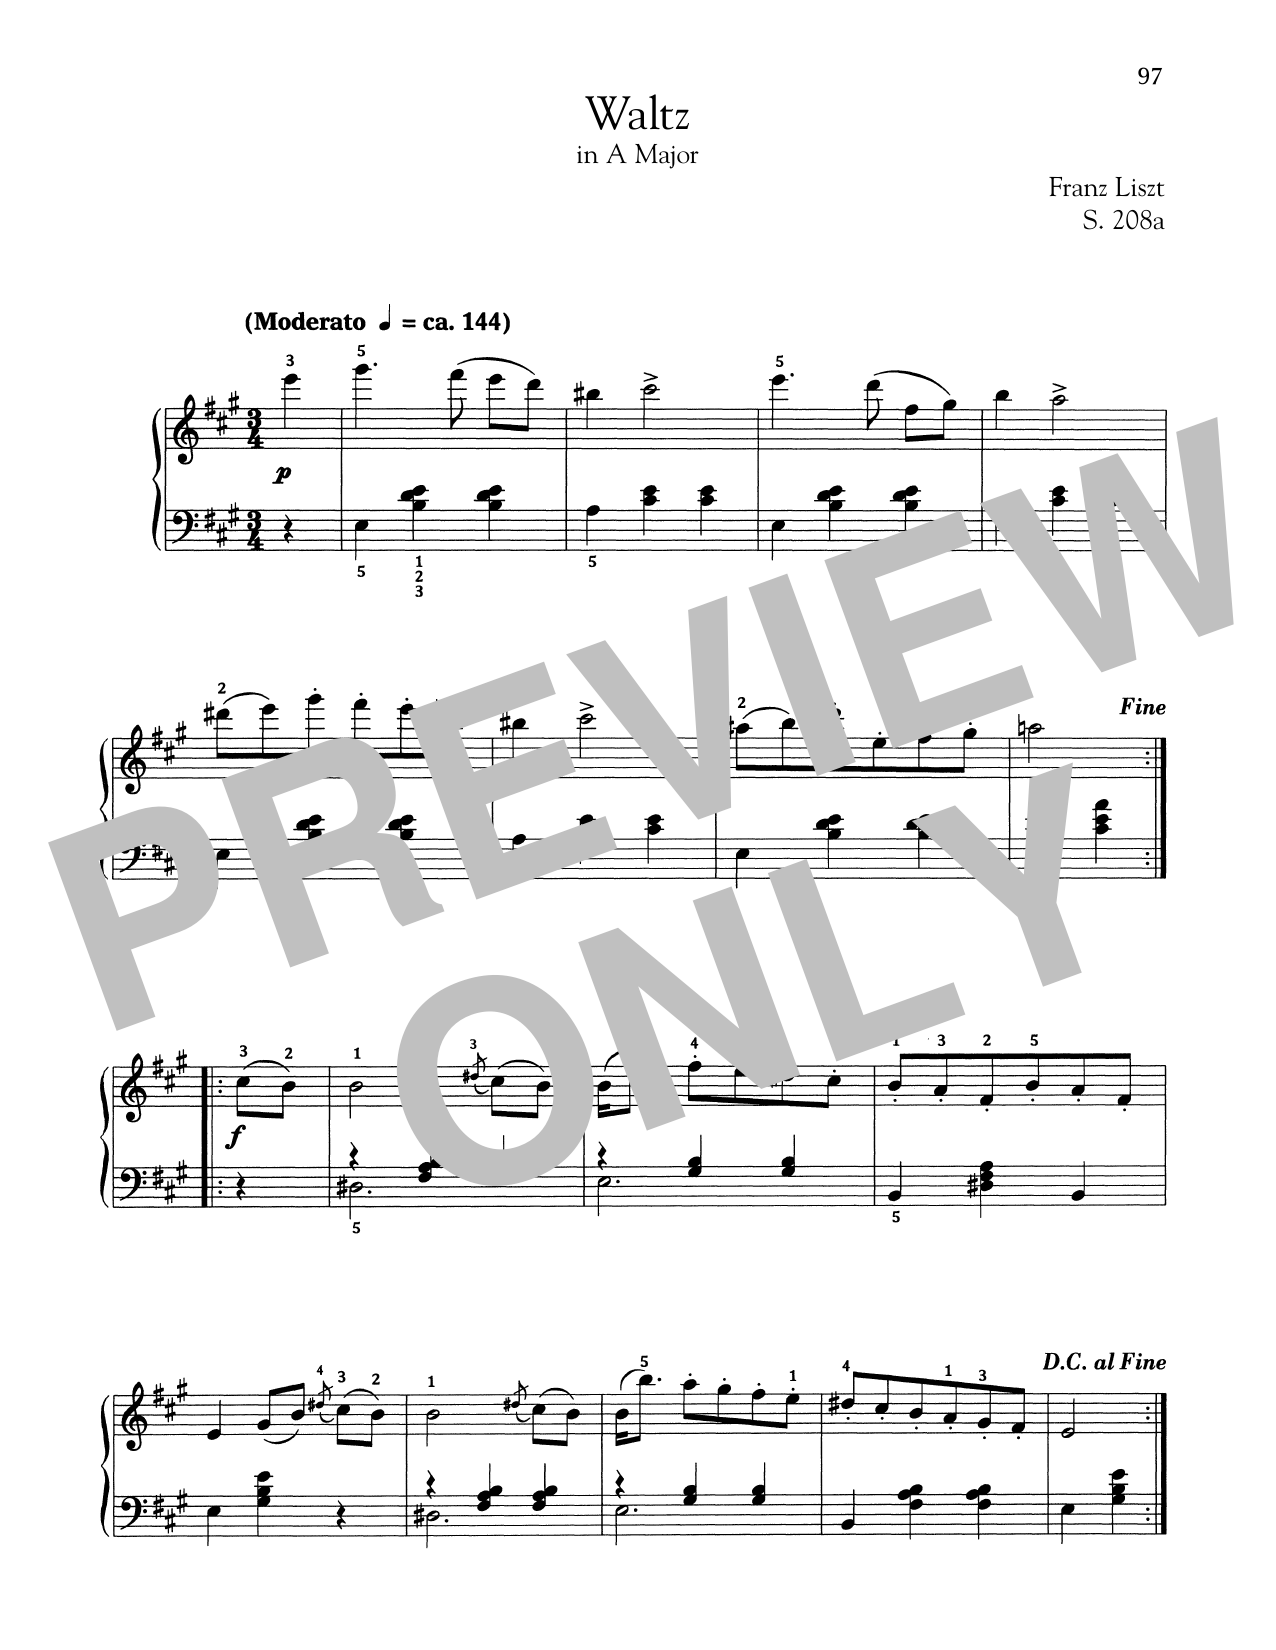 Franz Liszt Waltz In A Major, S. 208a sheet music notes and chords. Download Printable PDF.